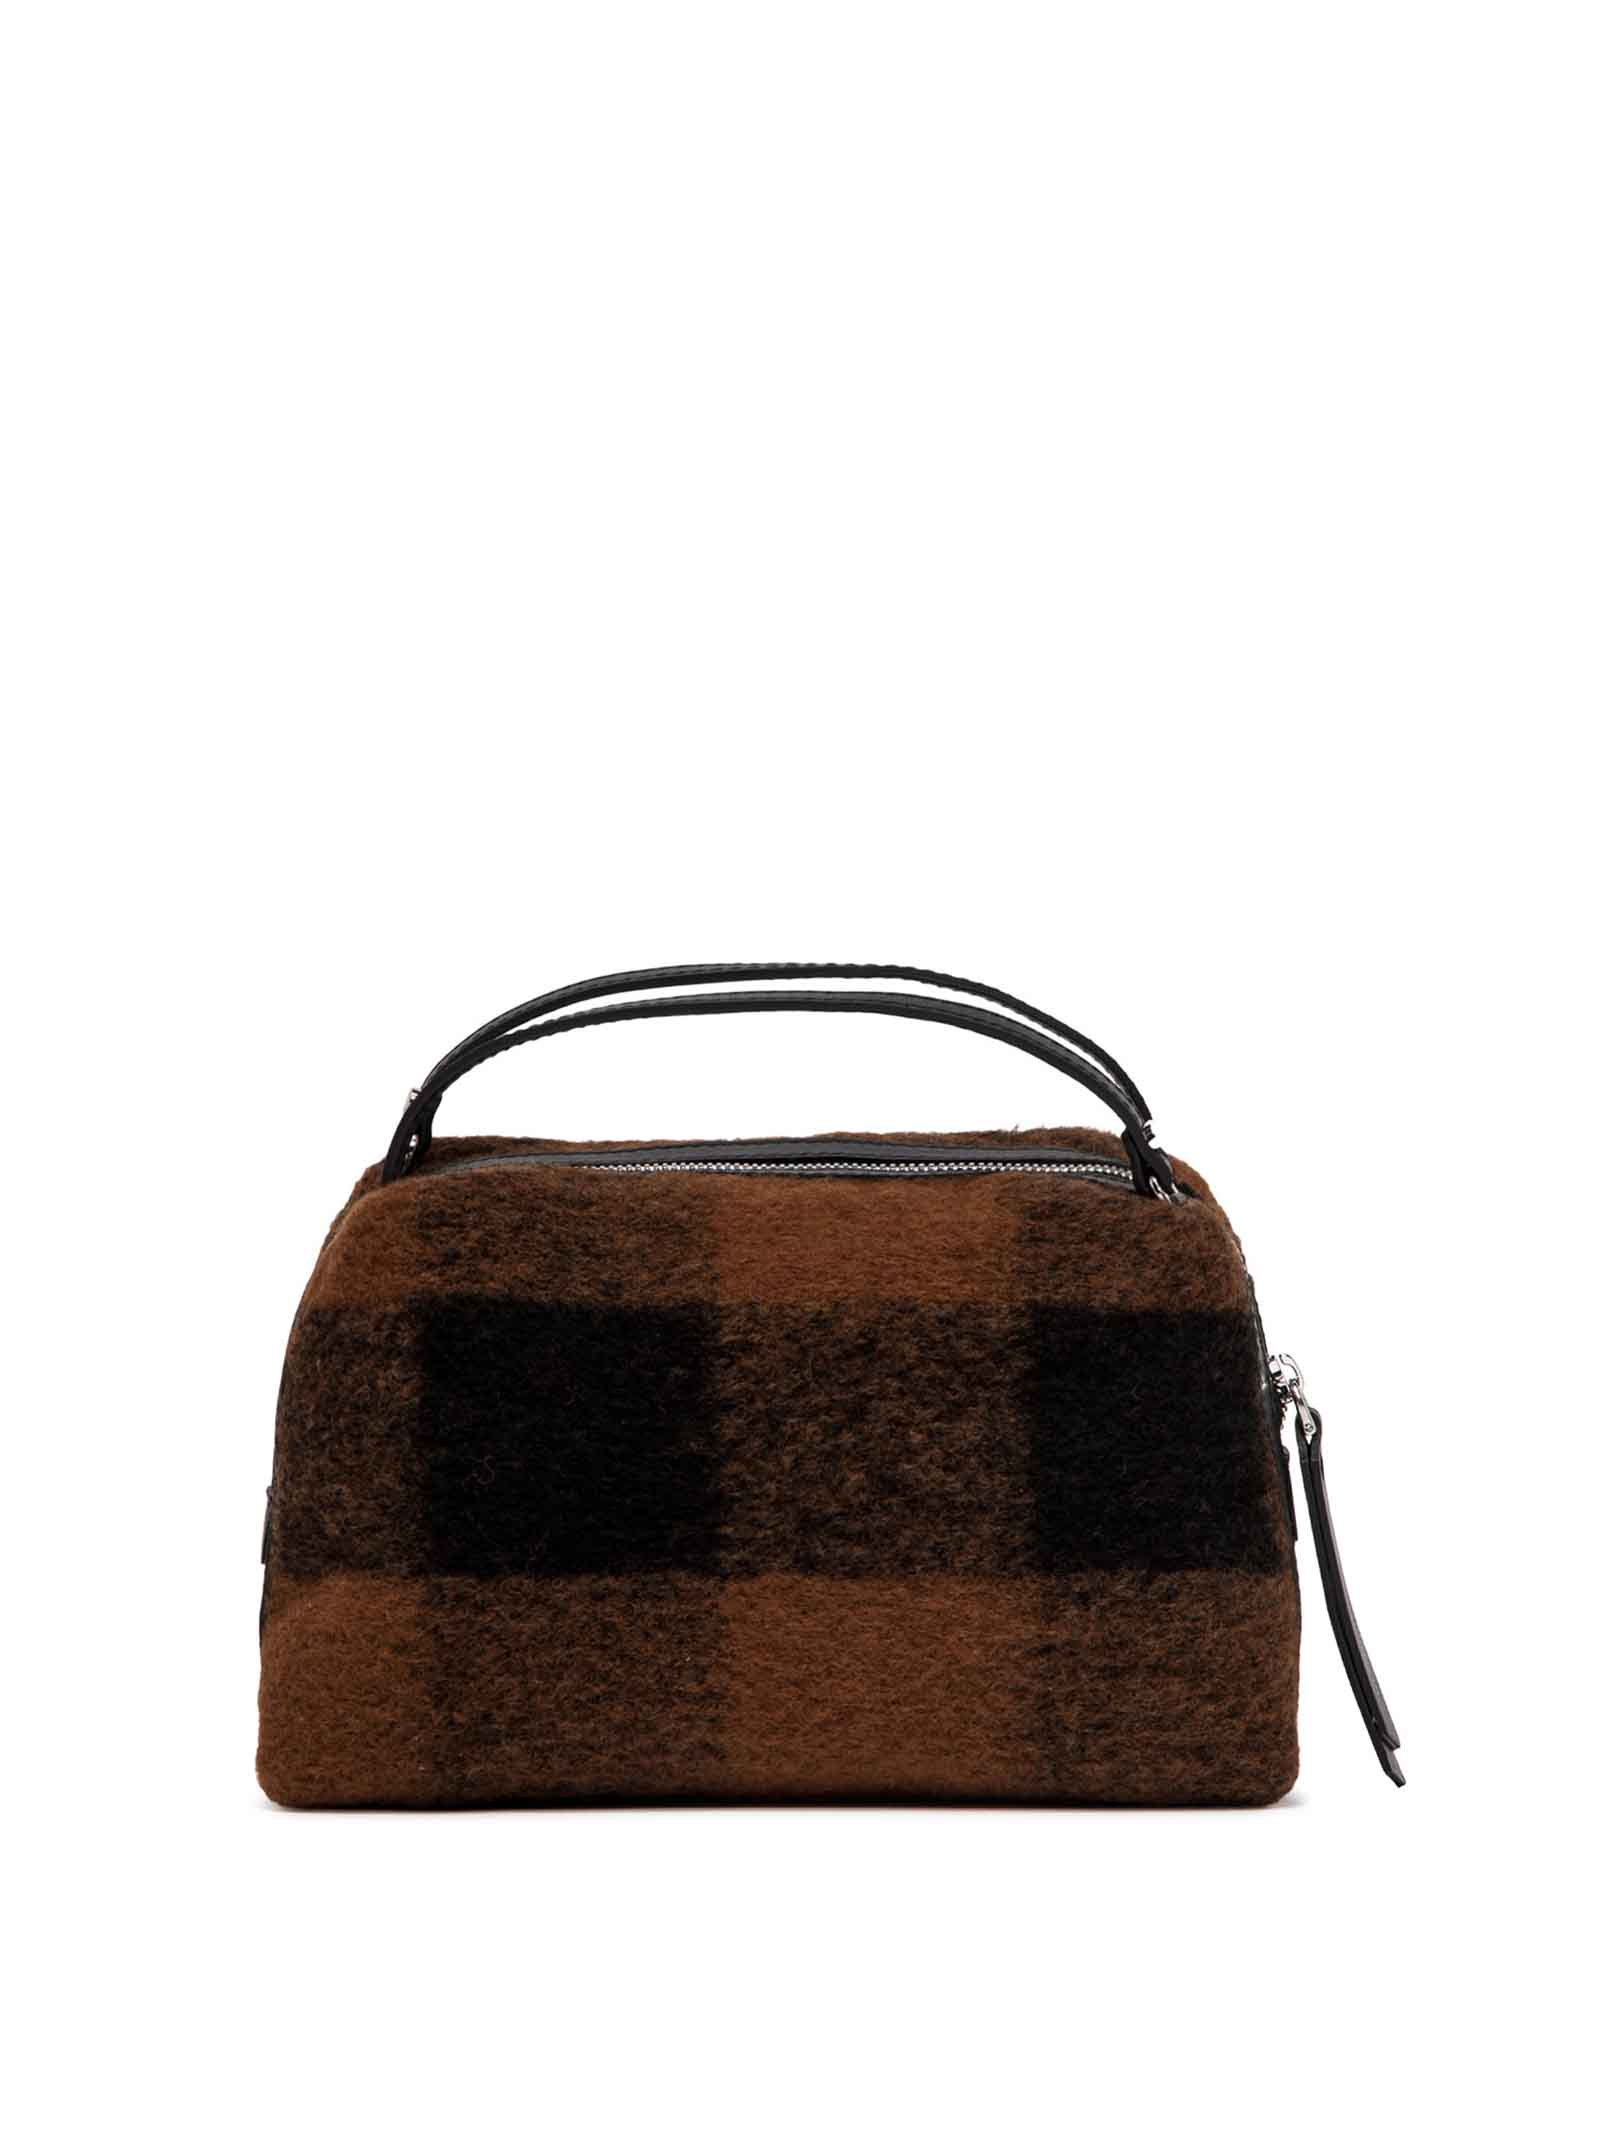 Women's Clucth Bag Alifa In Madras Tan And Brown Fabric And Black Leather Inserts With Adjustable And Detachable Cross-body Strap Gianni Chiarini | Bags and backpacks | BS825811130